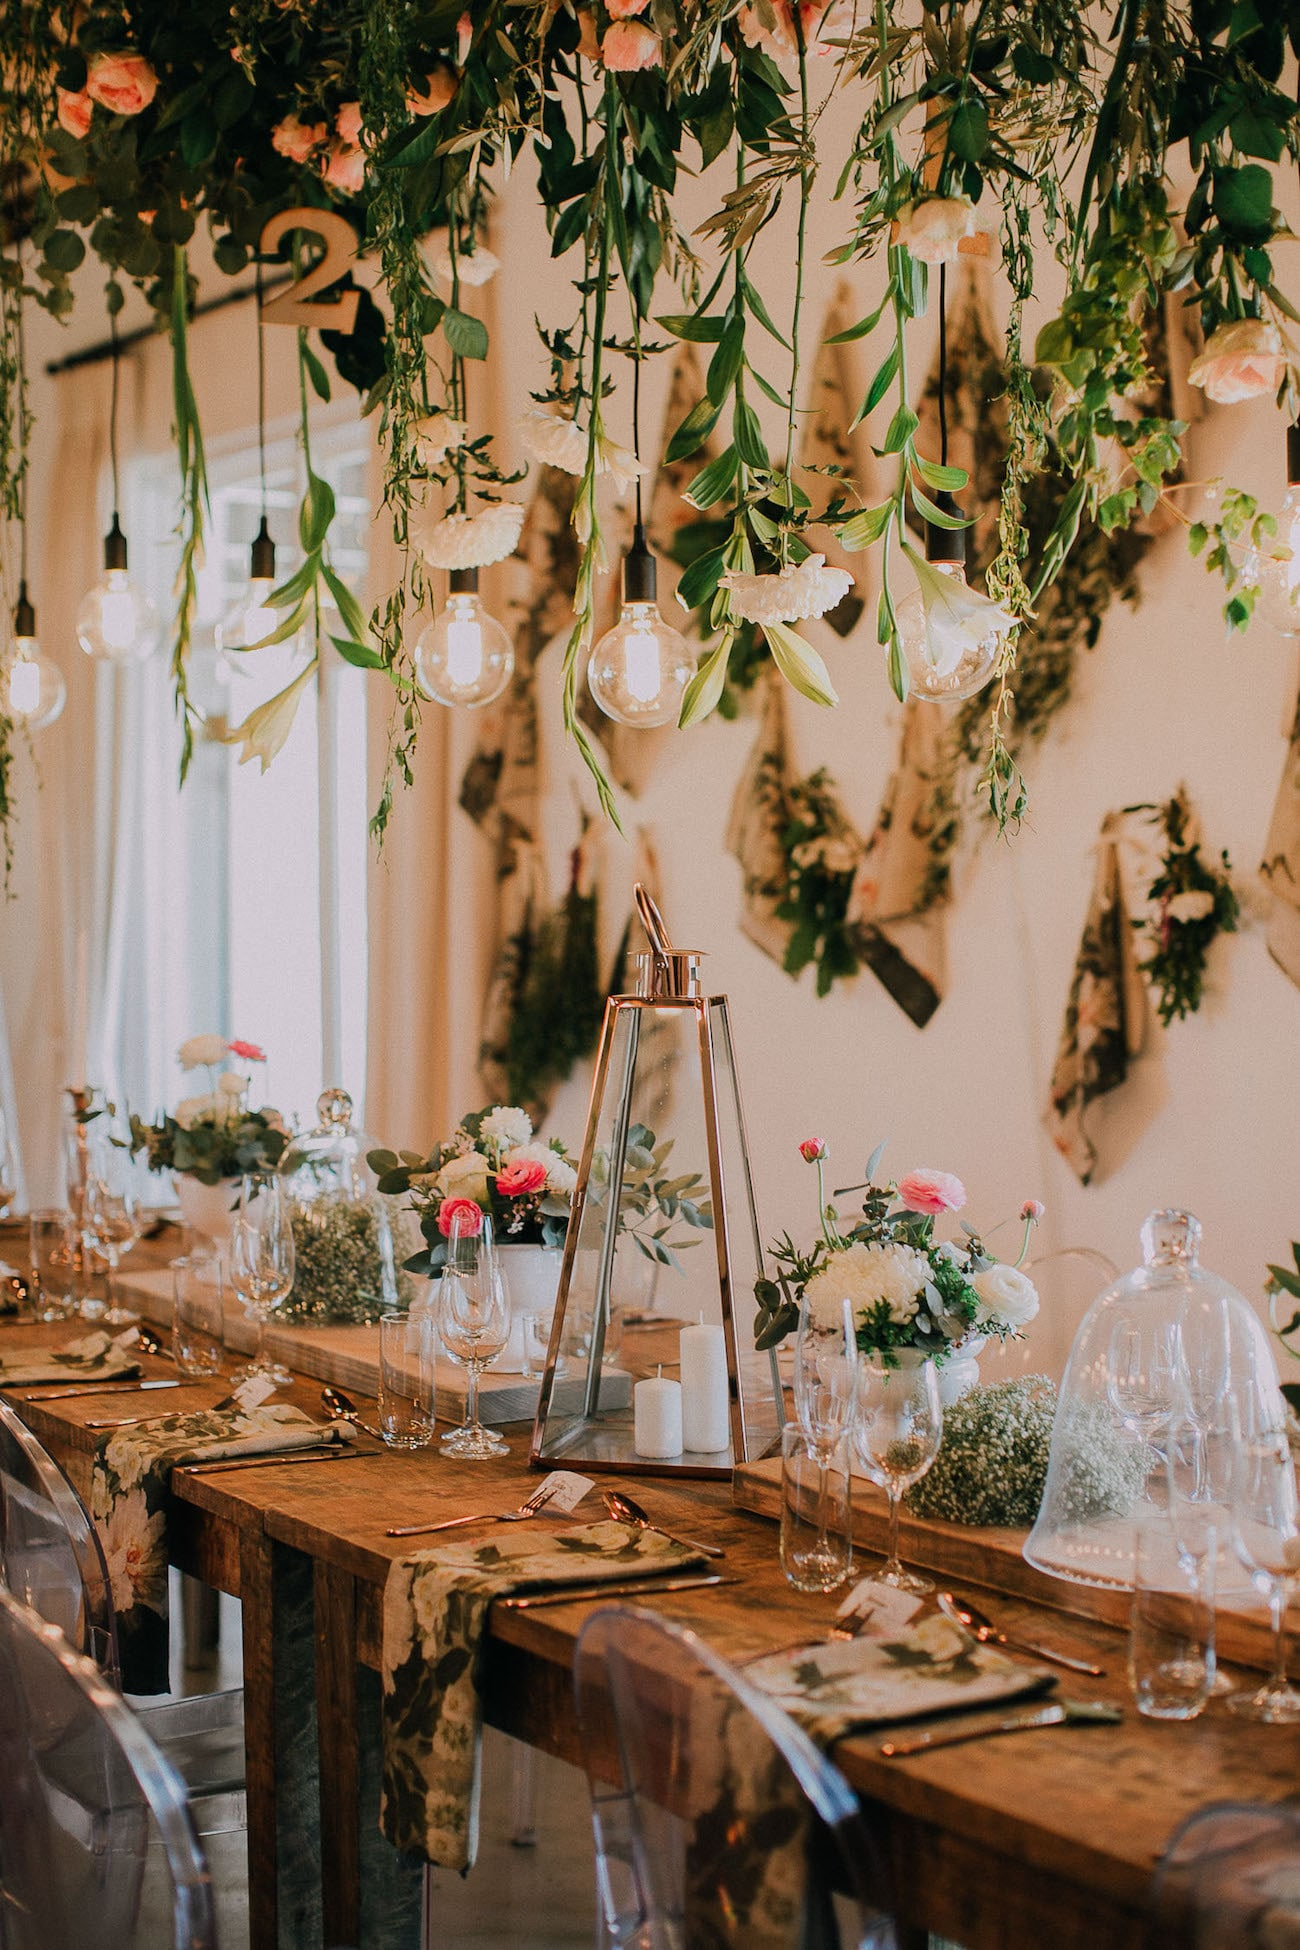 Hanging Lights and Flowers | Image: Michelle du Toit